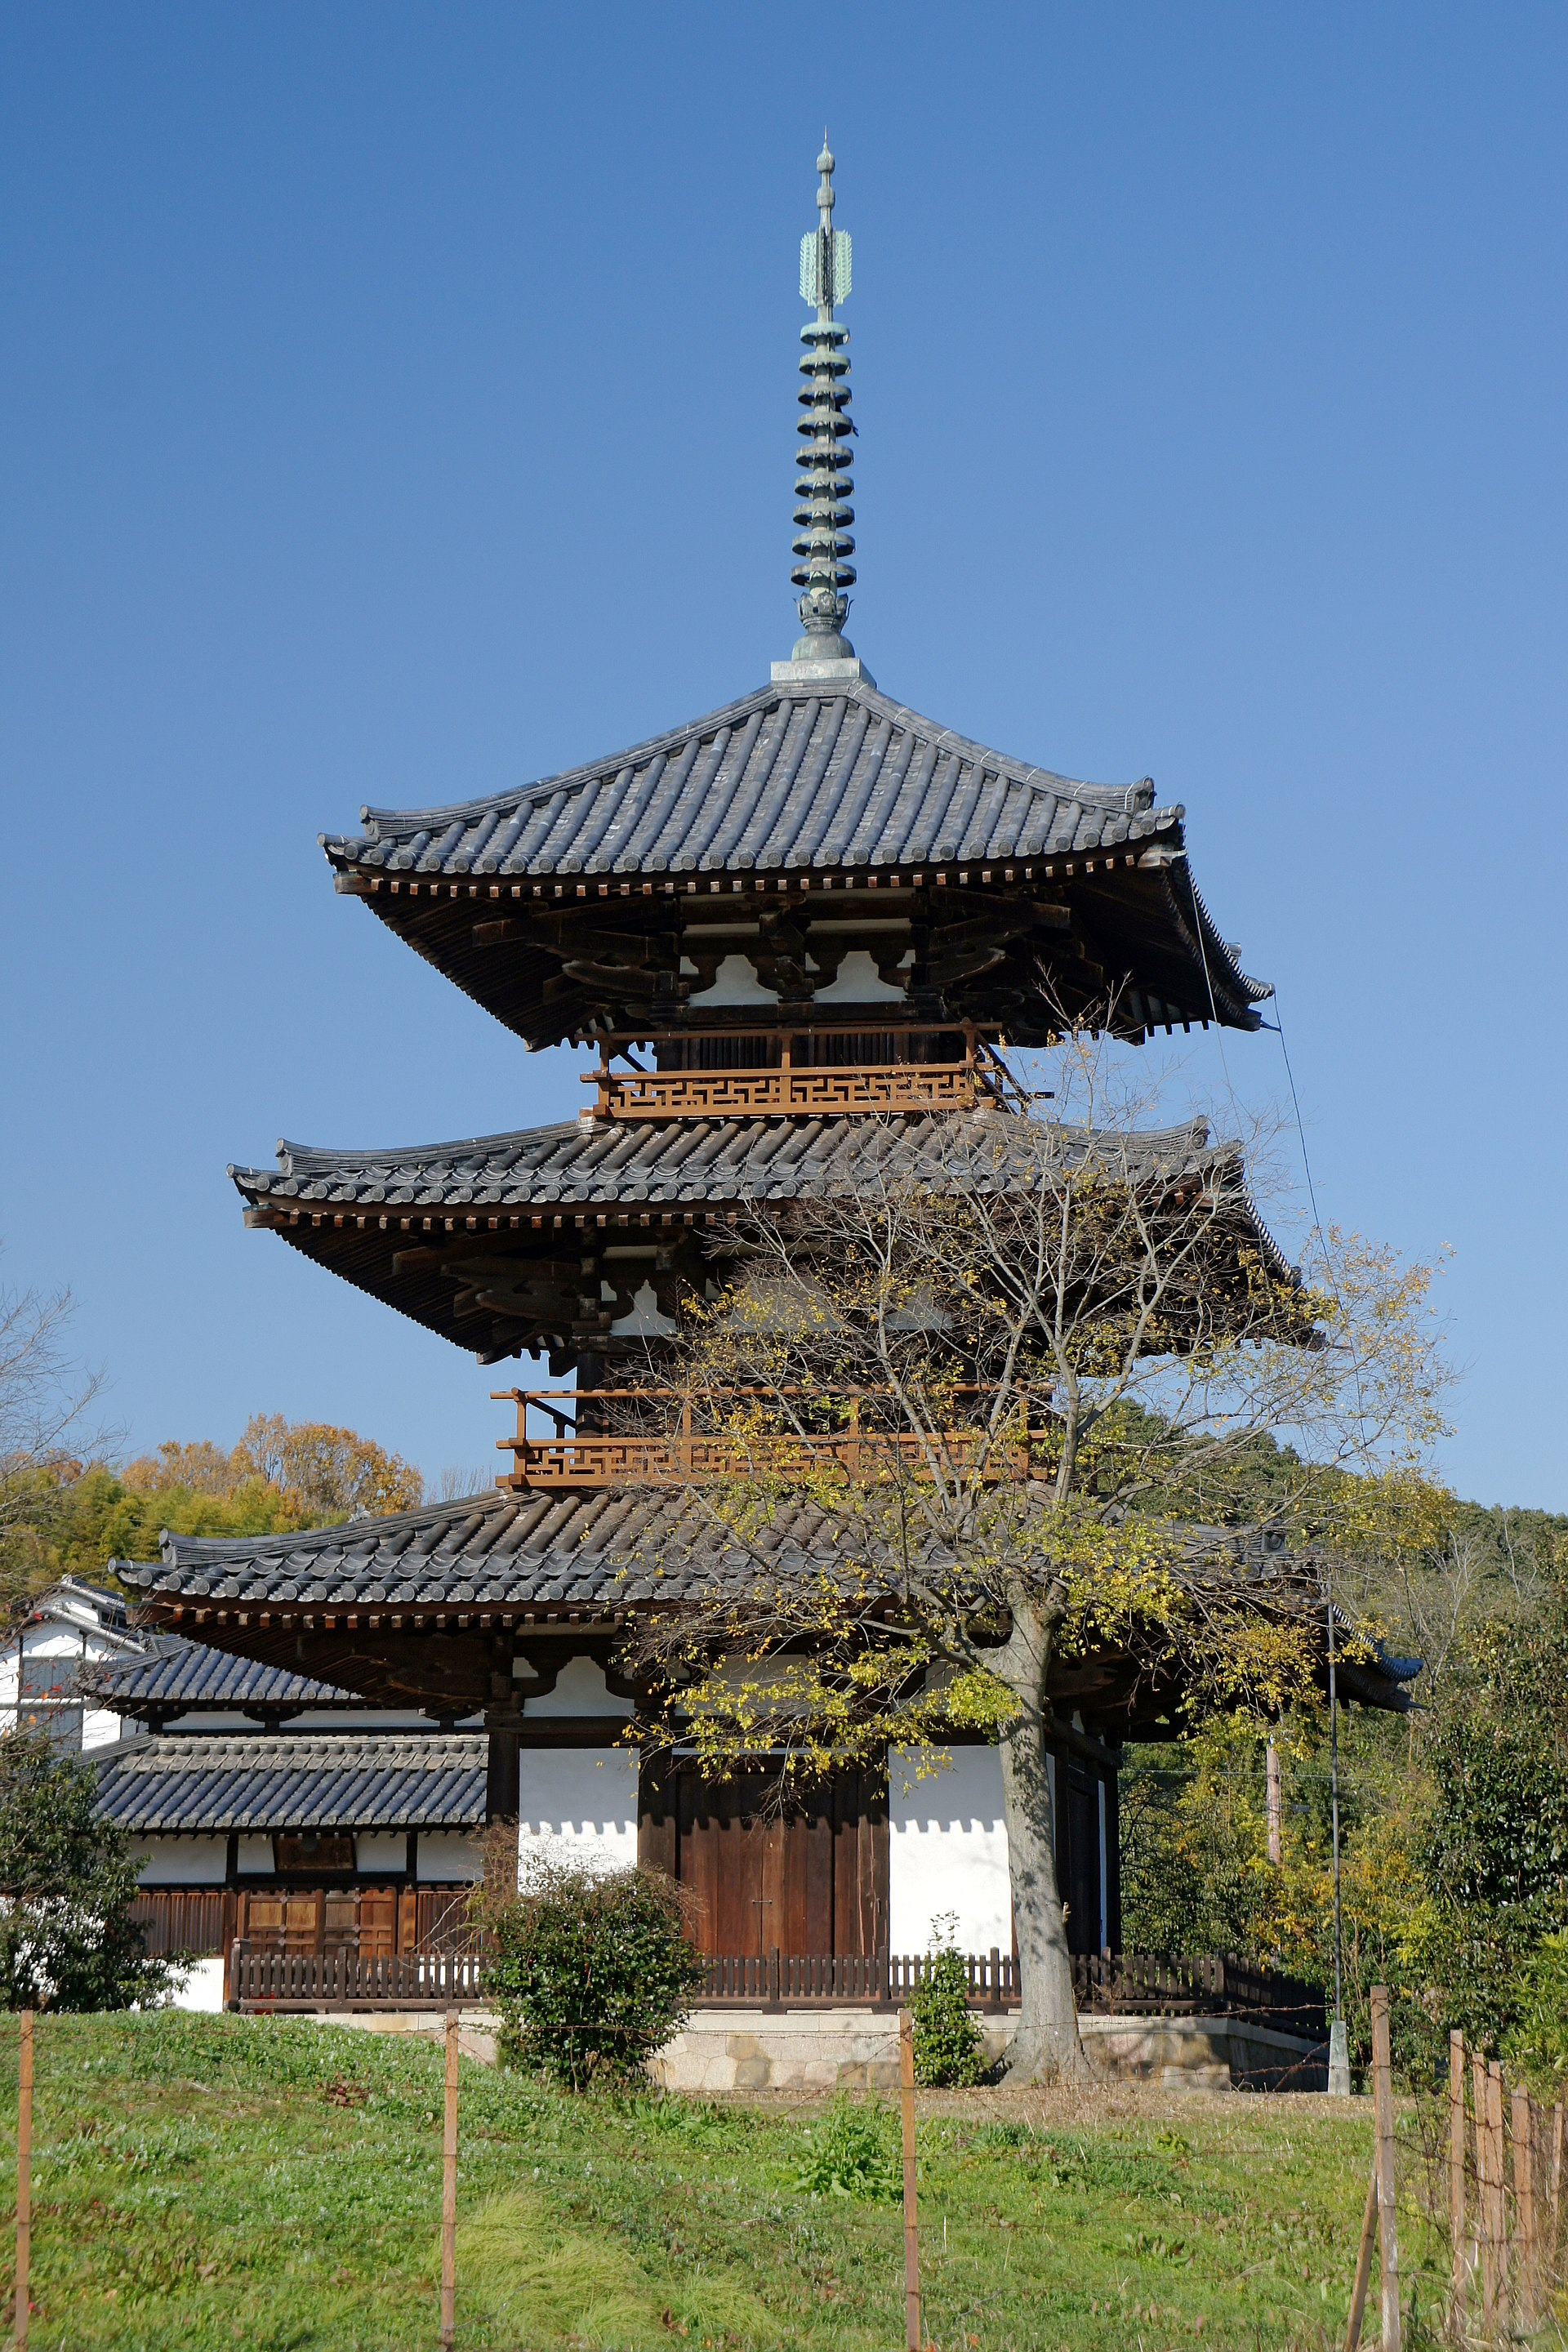 the pagoda Pagoda: pagoda, a towerlike, multistory, solid or hollow structure made of stone, brick, or wood, usually associated with a buddhist temple complex and therefore.